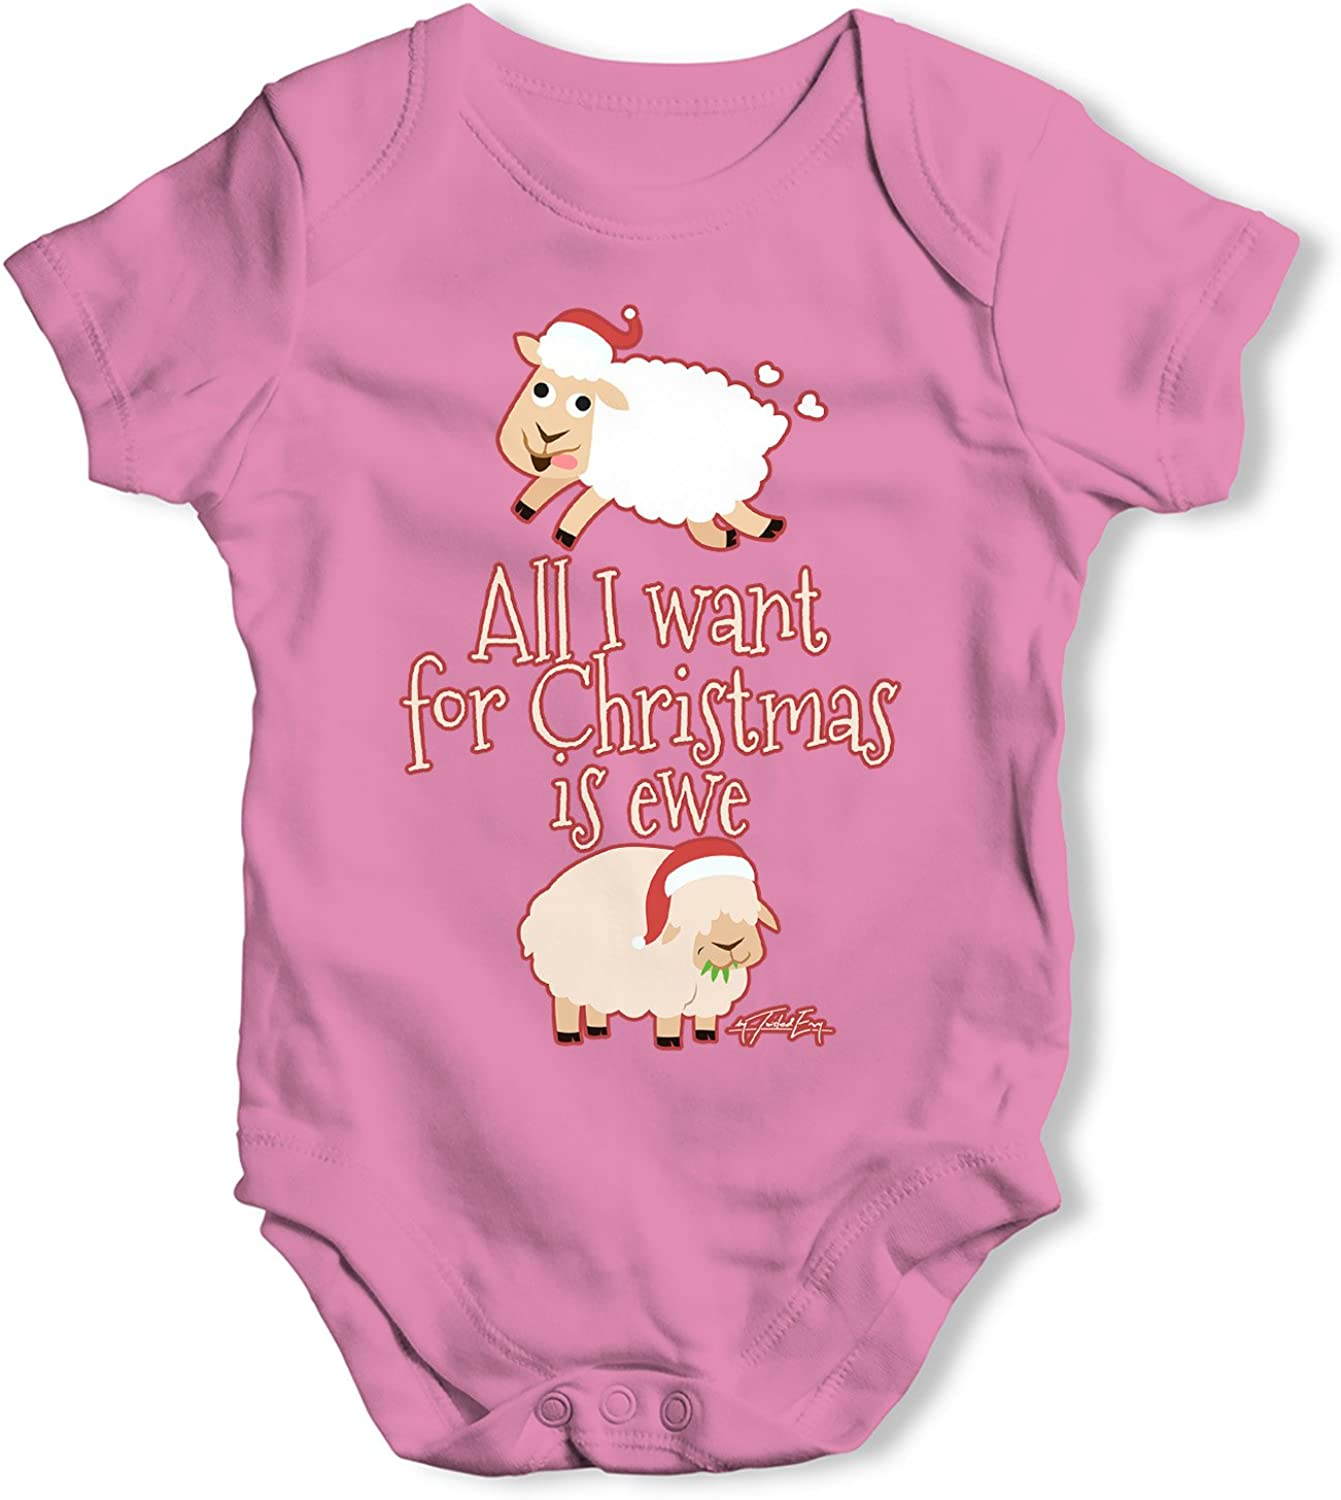 Twisted Envy Cute Sheep Baby Unisex Funny Baby Grow Bodysuit